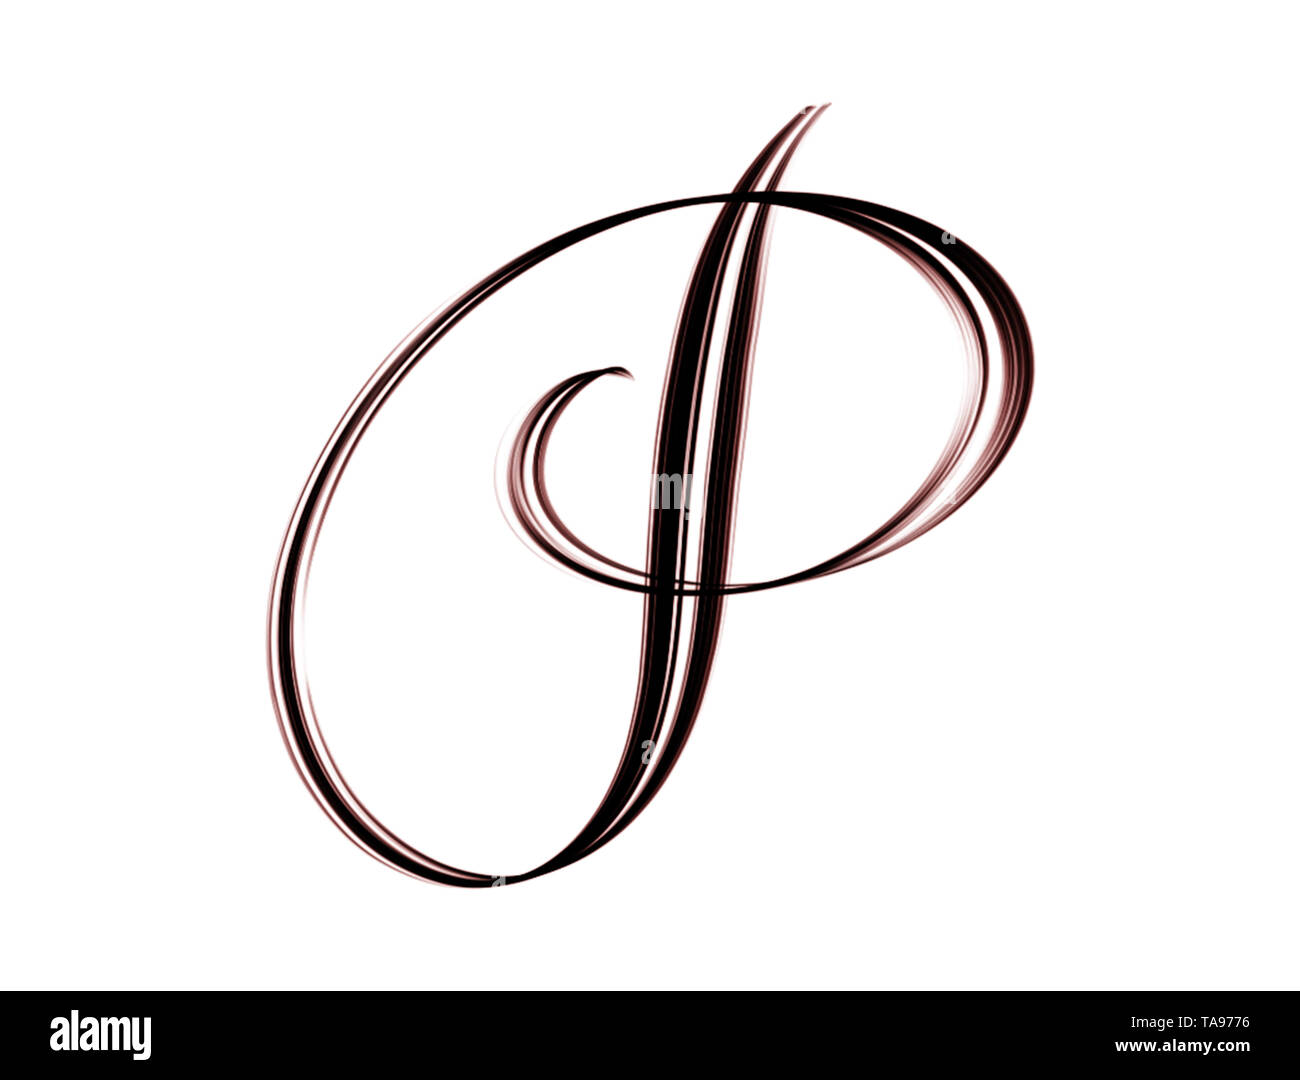 Capital Letter P High Resolution Stock Photography And Images Alamy